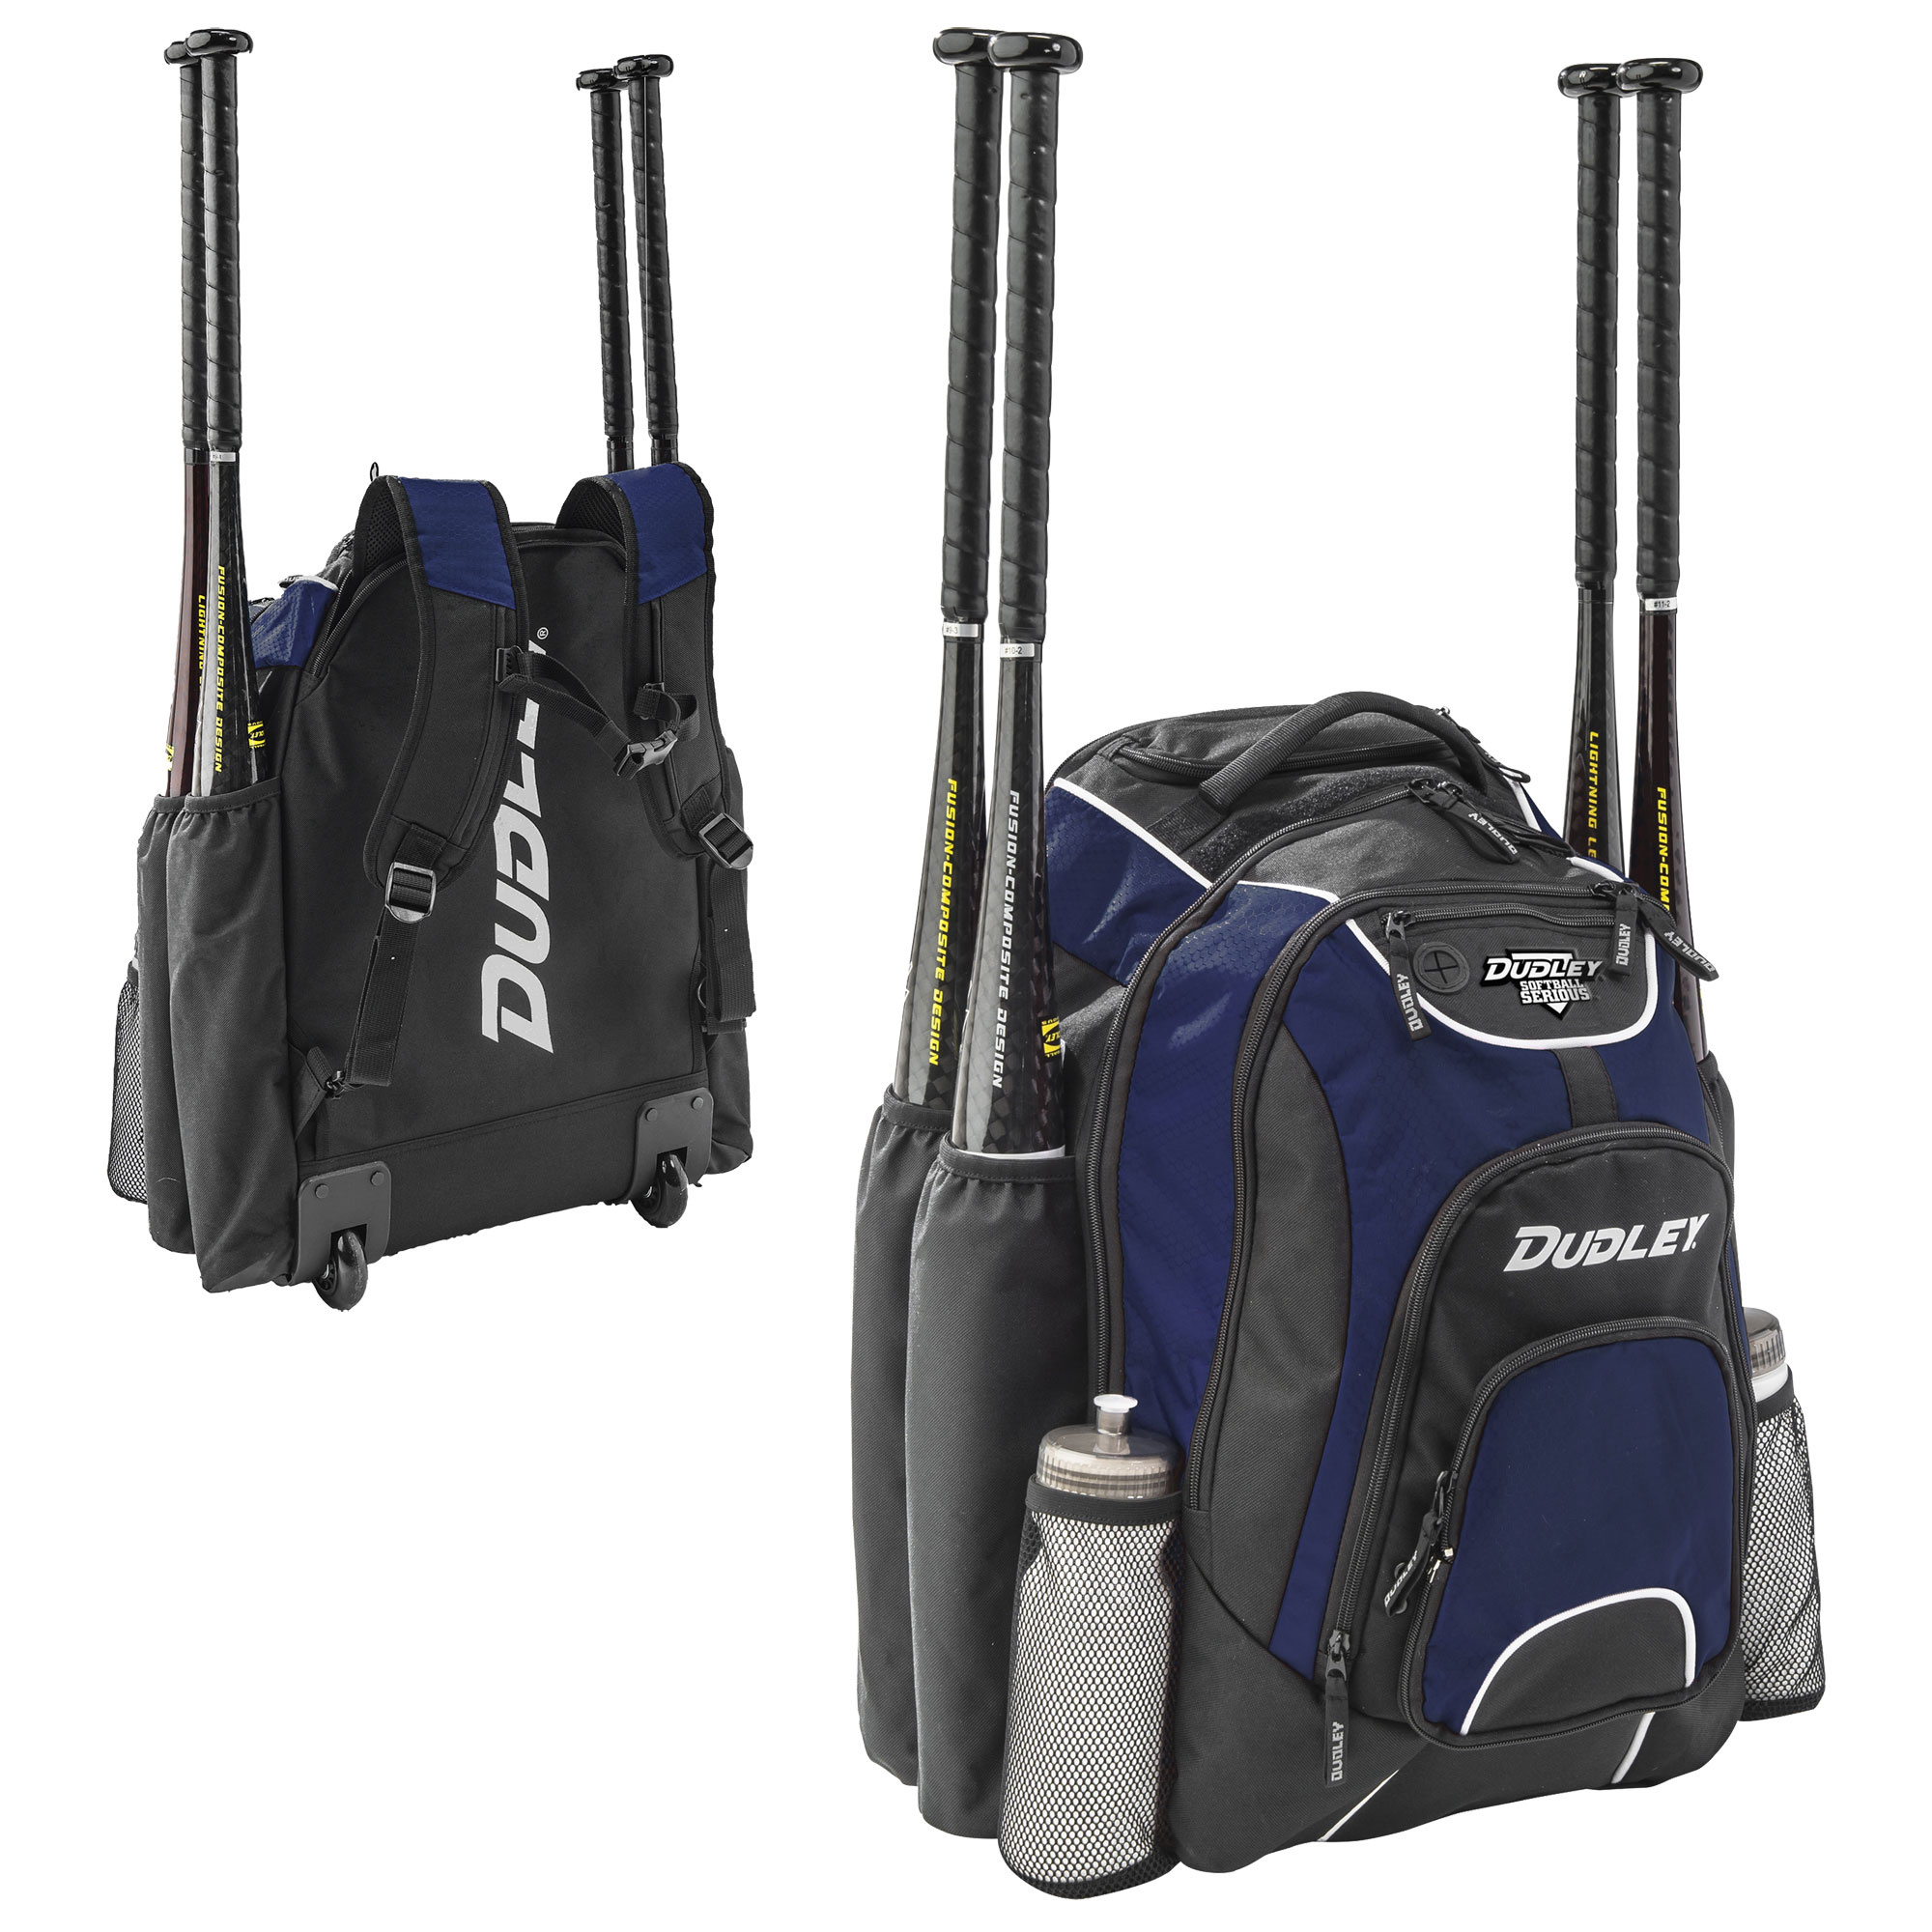 Dudley Softball Wheeled and Carry Bat Pack Backpack Bag